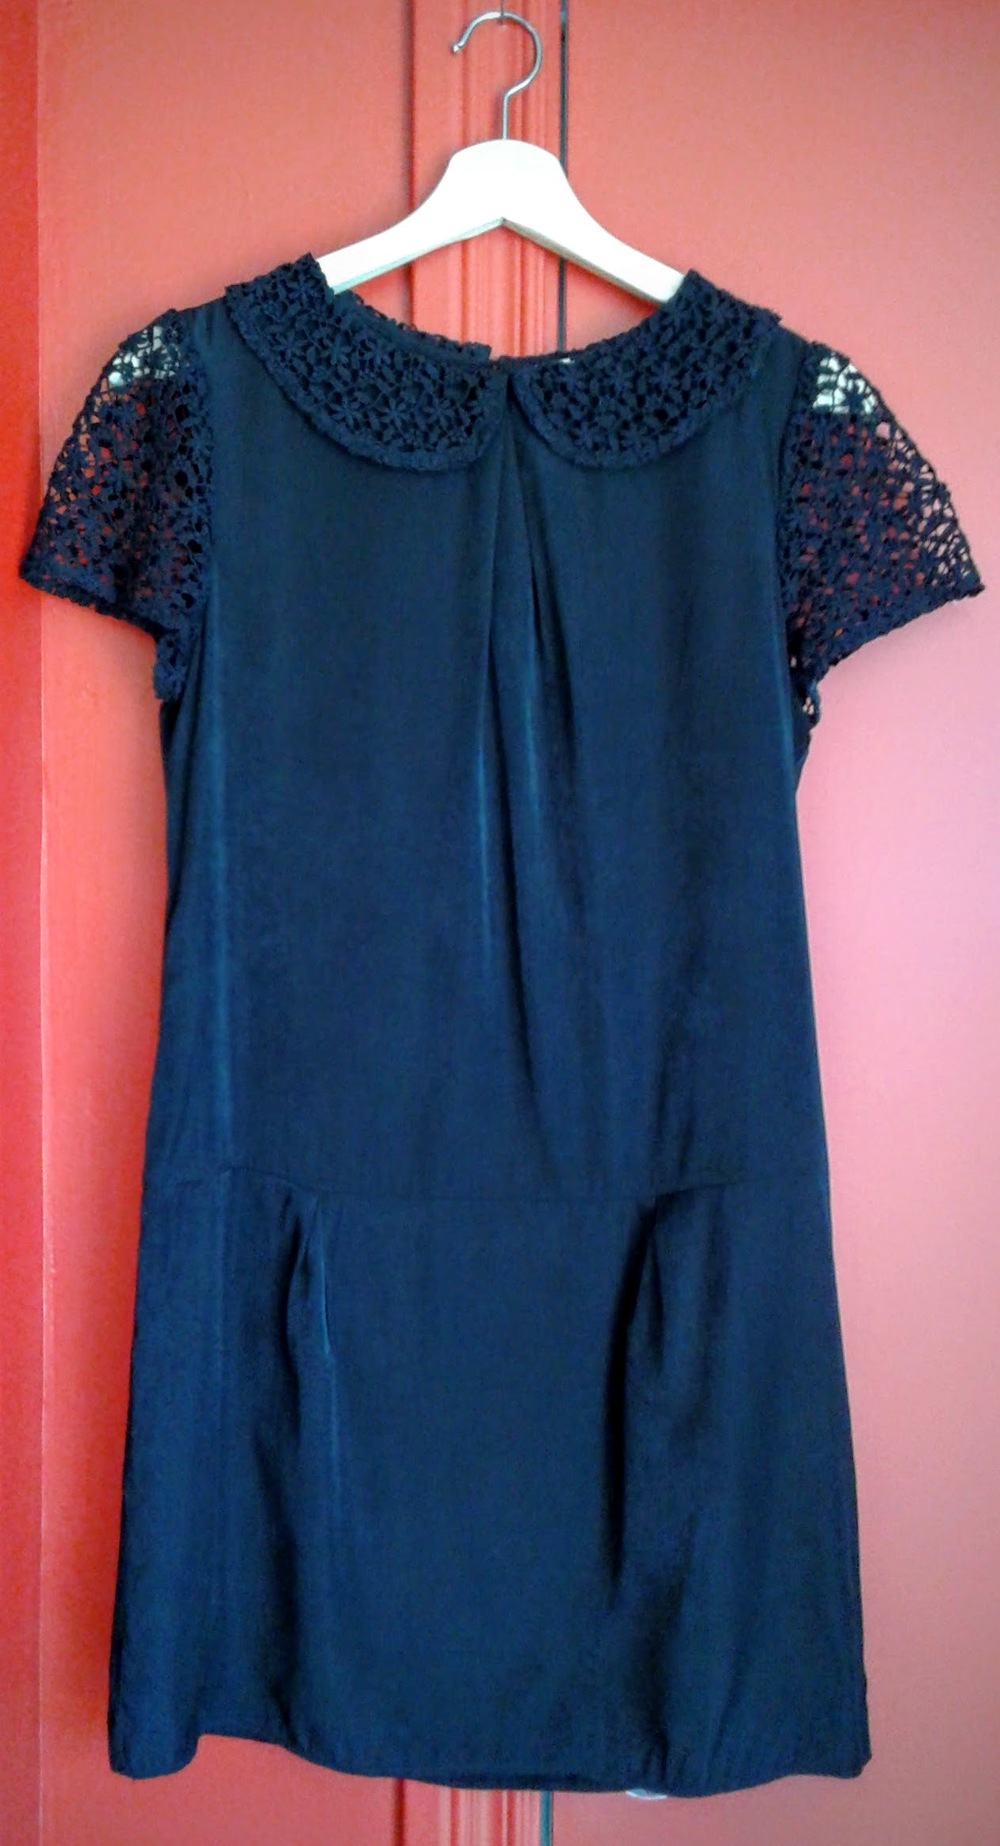 An'ge dress; Size S, $24